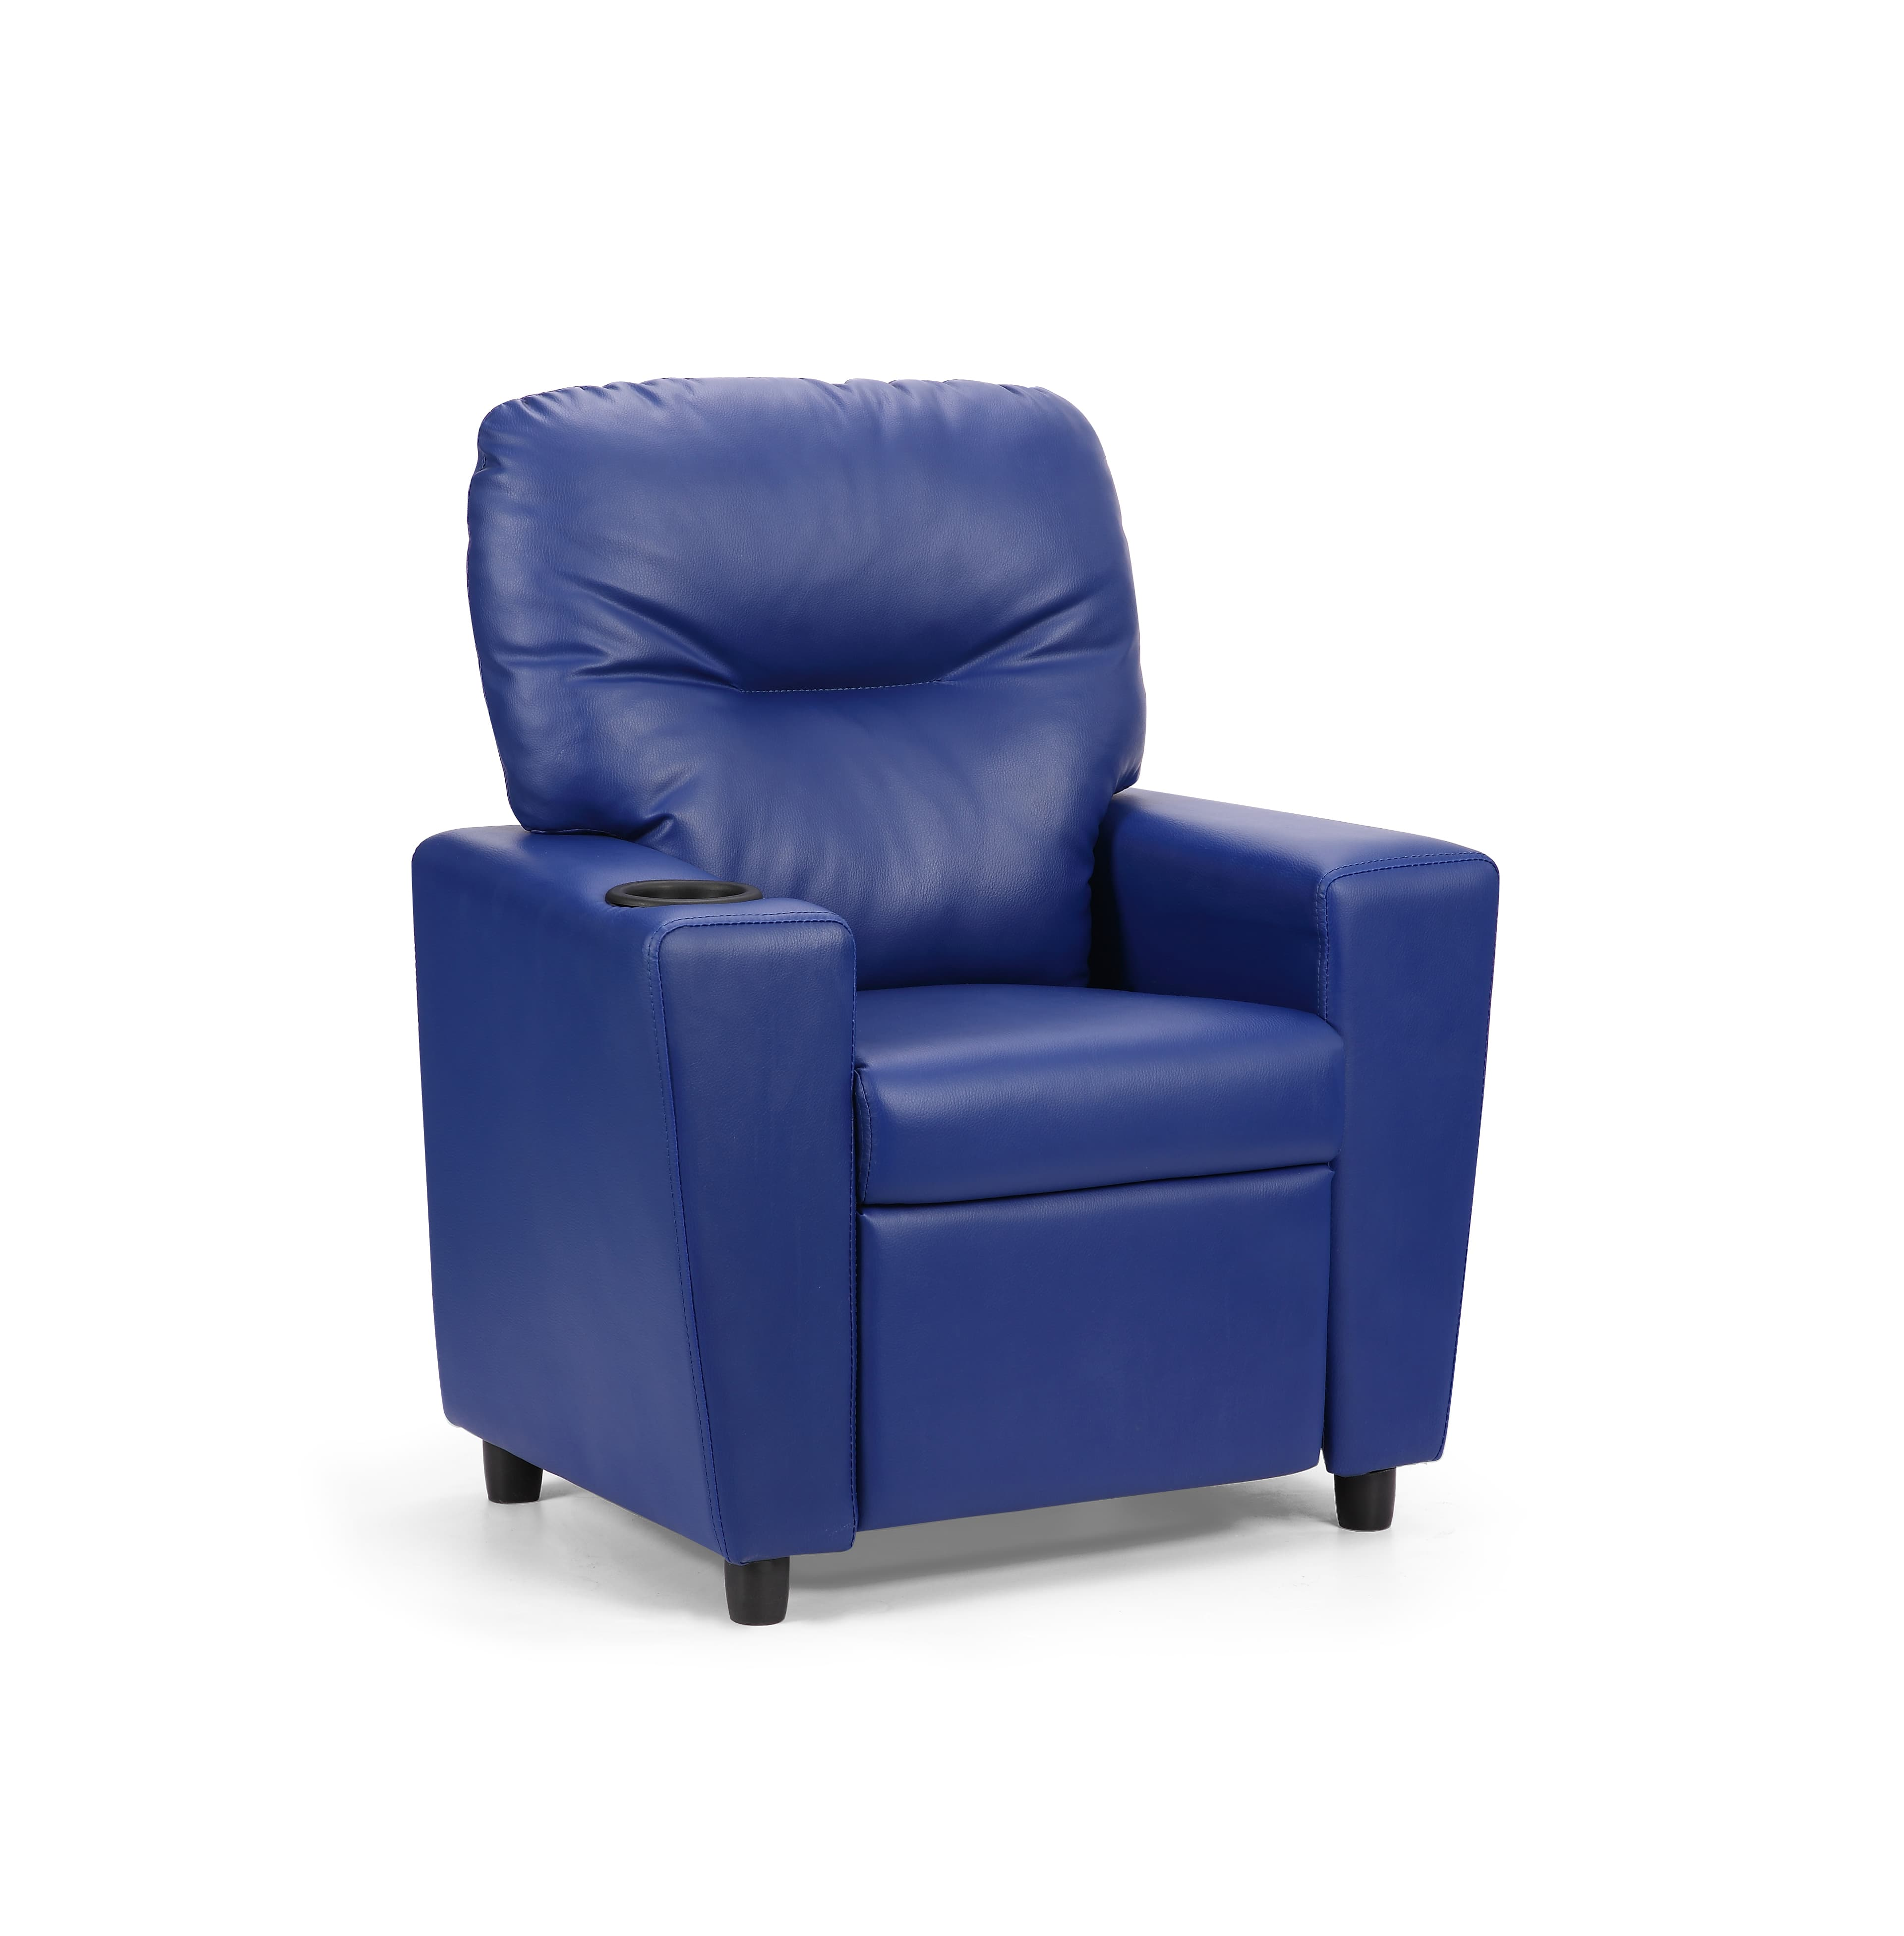 Tommy Children's Recliner Chair